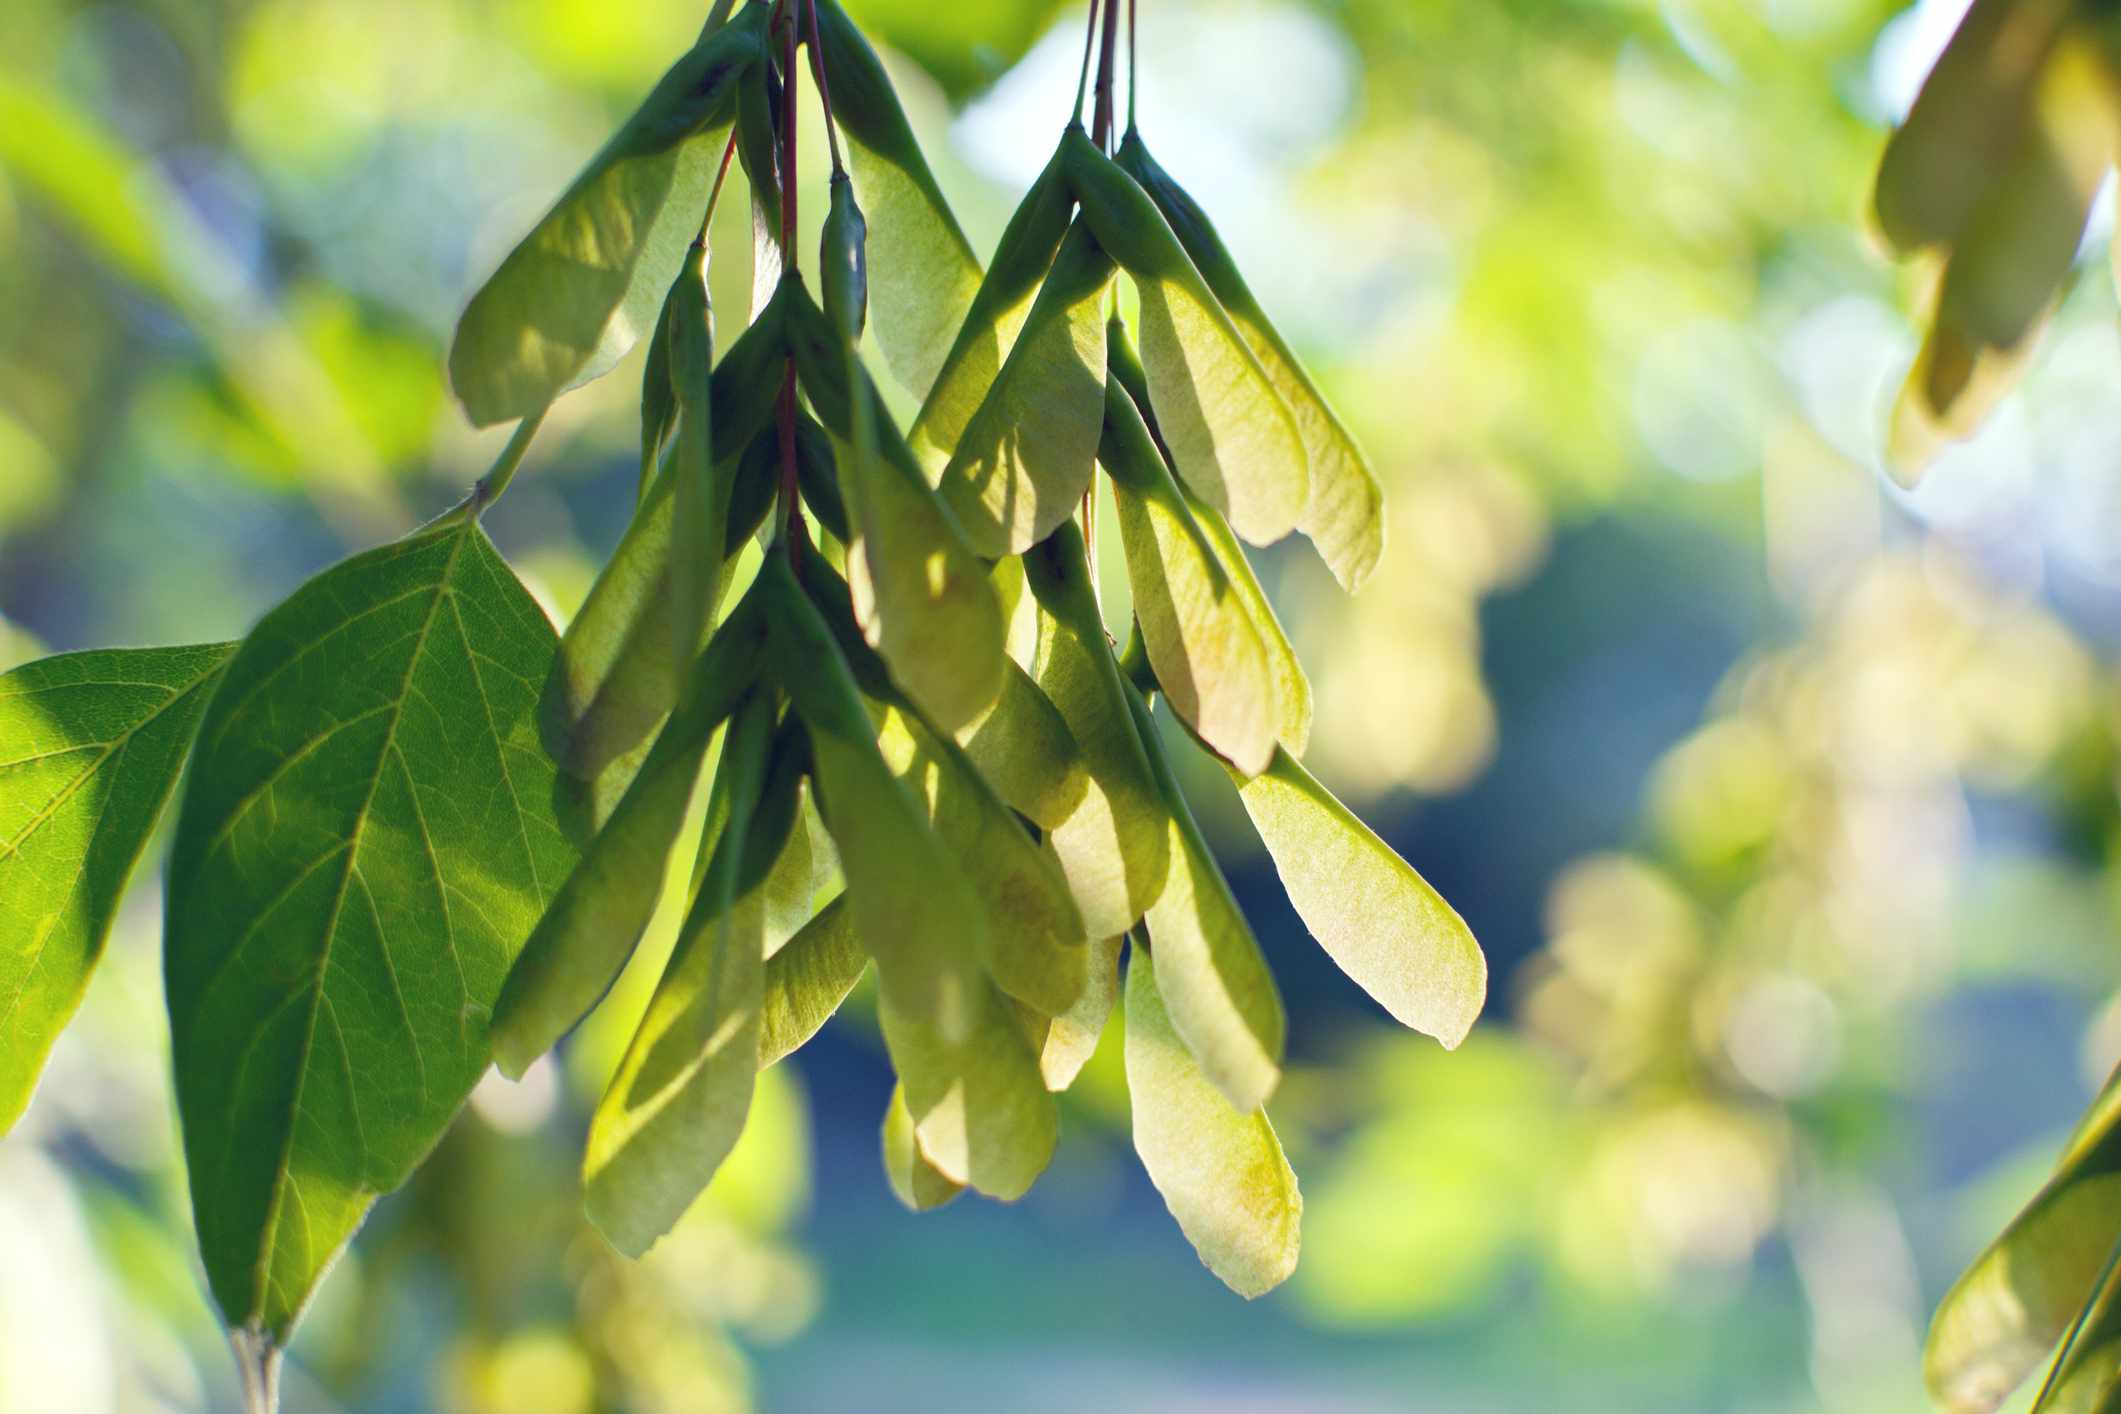 A leaf and seeds hanging from a Boxelder tree.